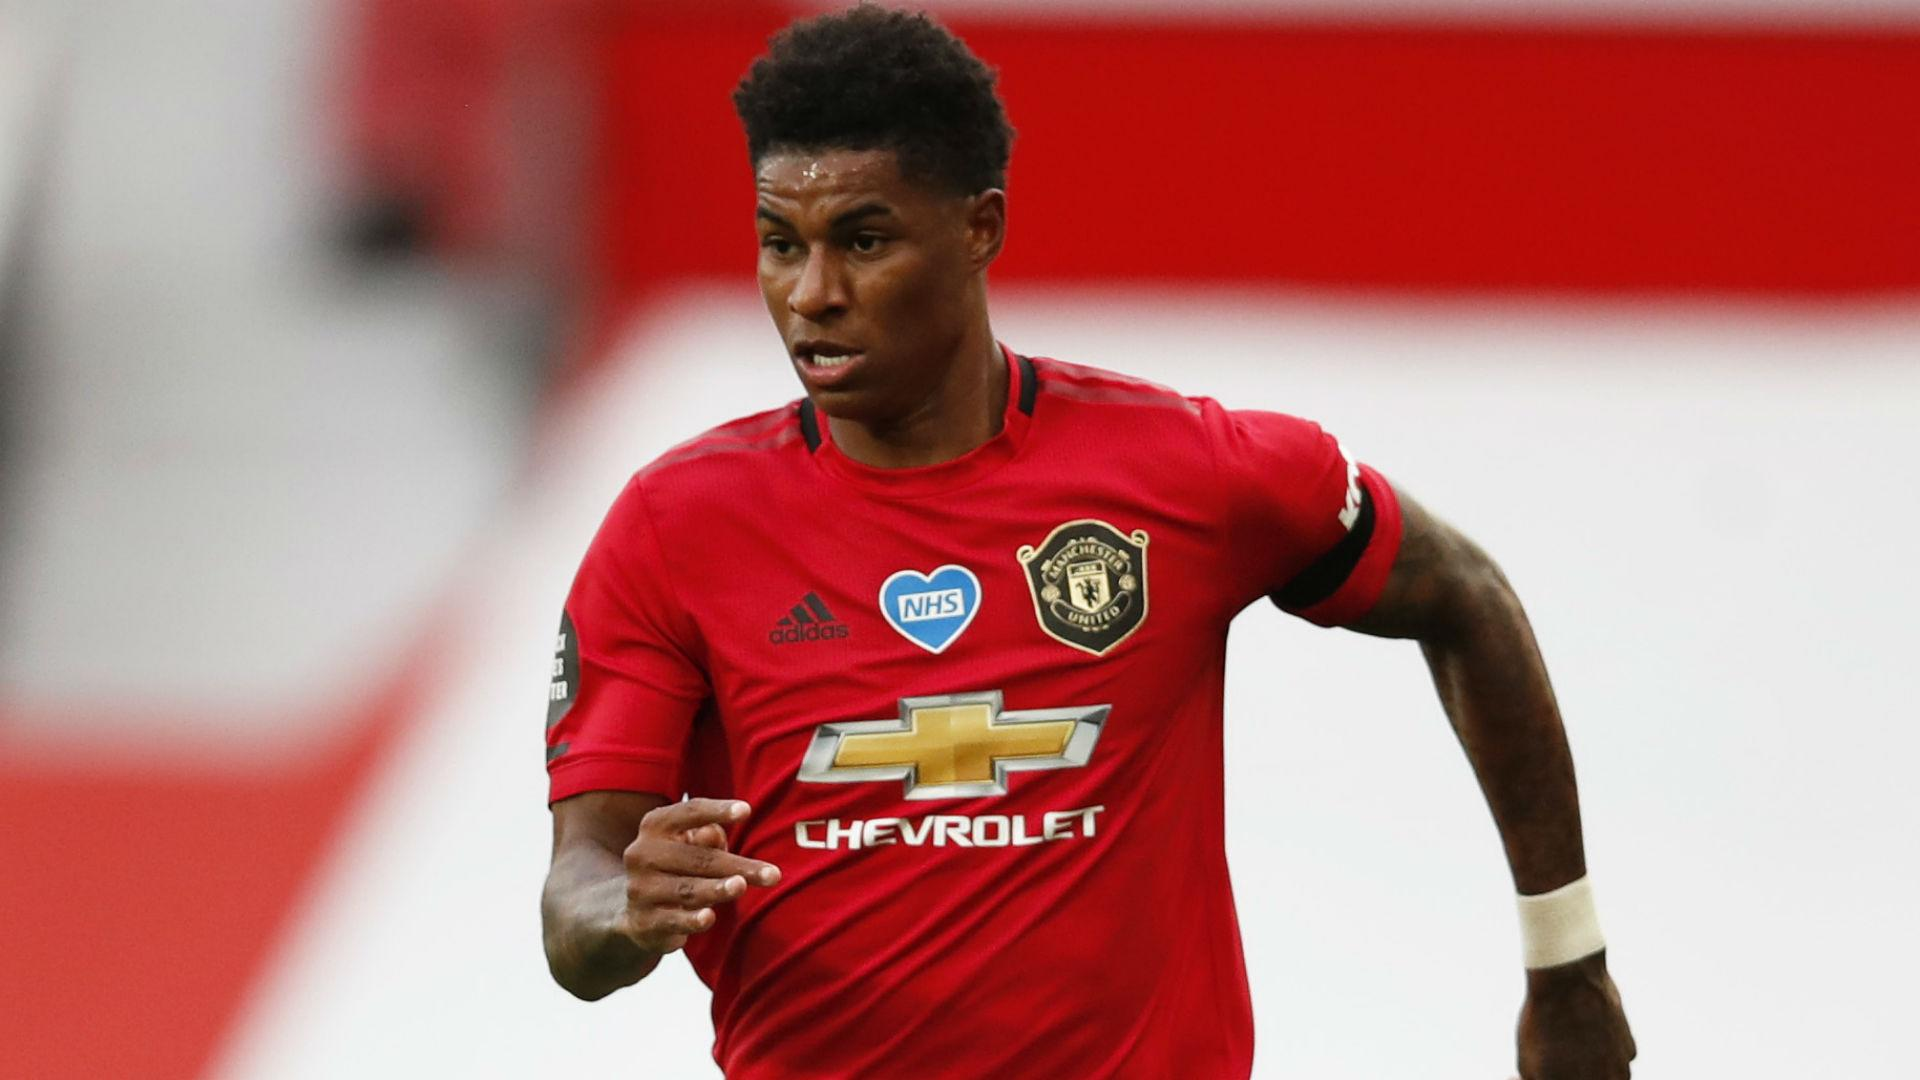 Rashford to receive honorary degree from University of Manchester